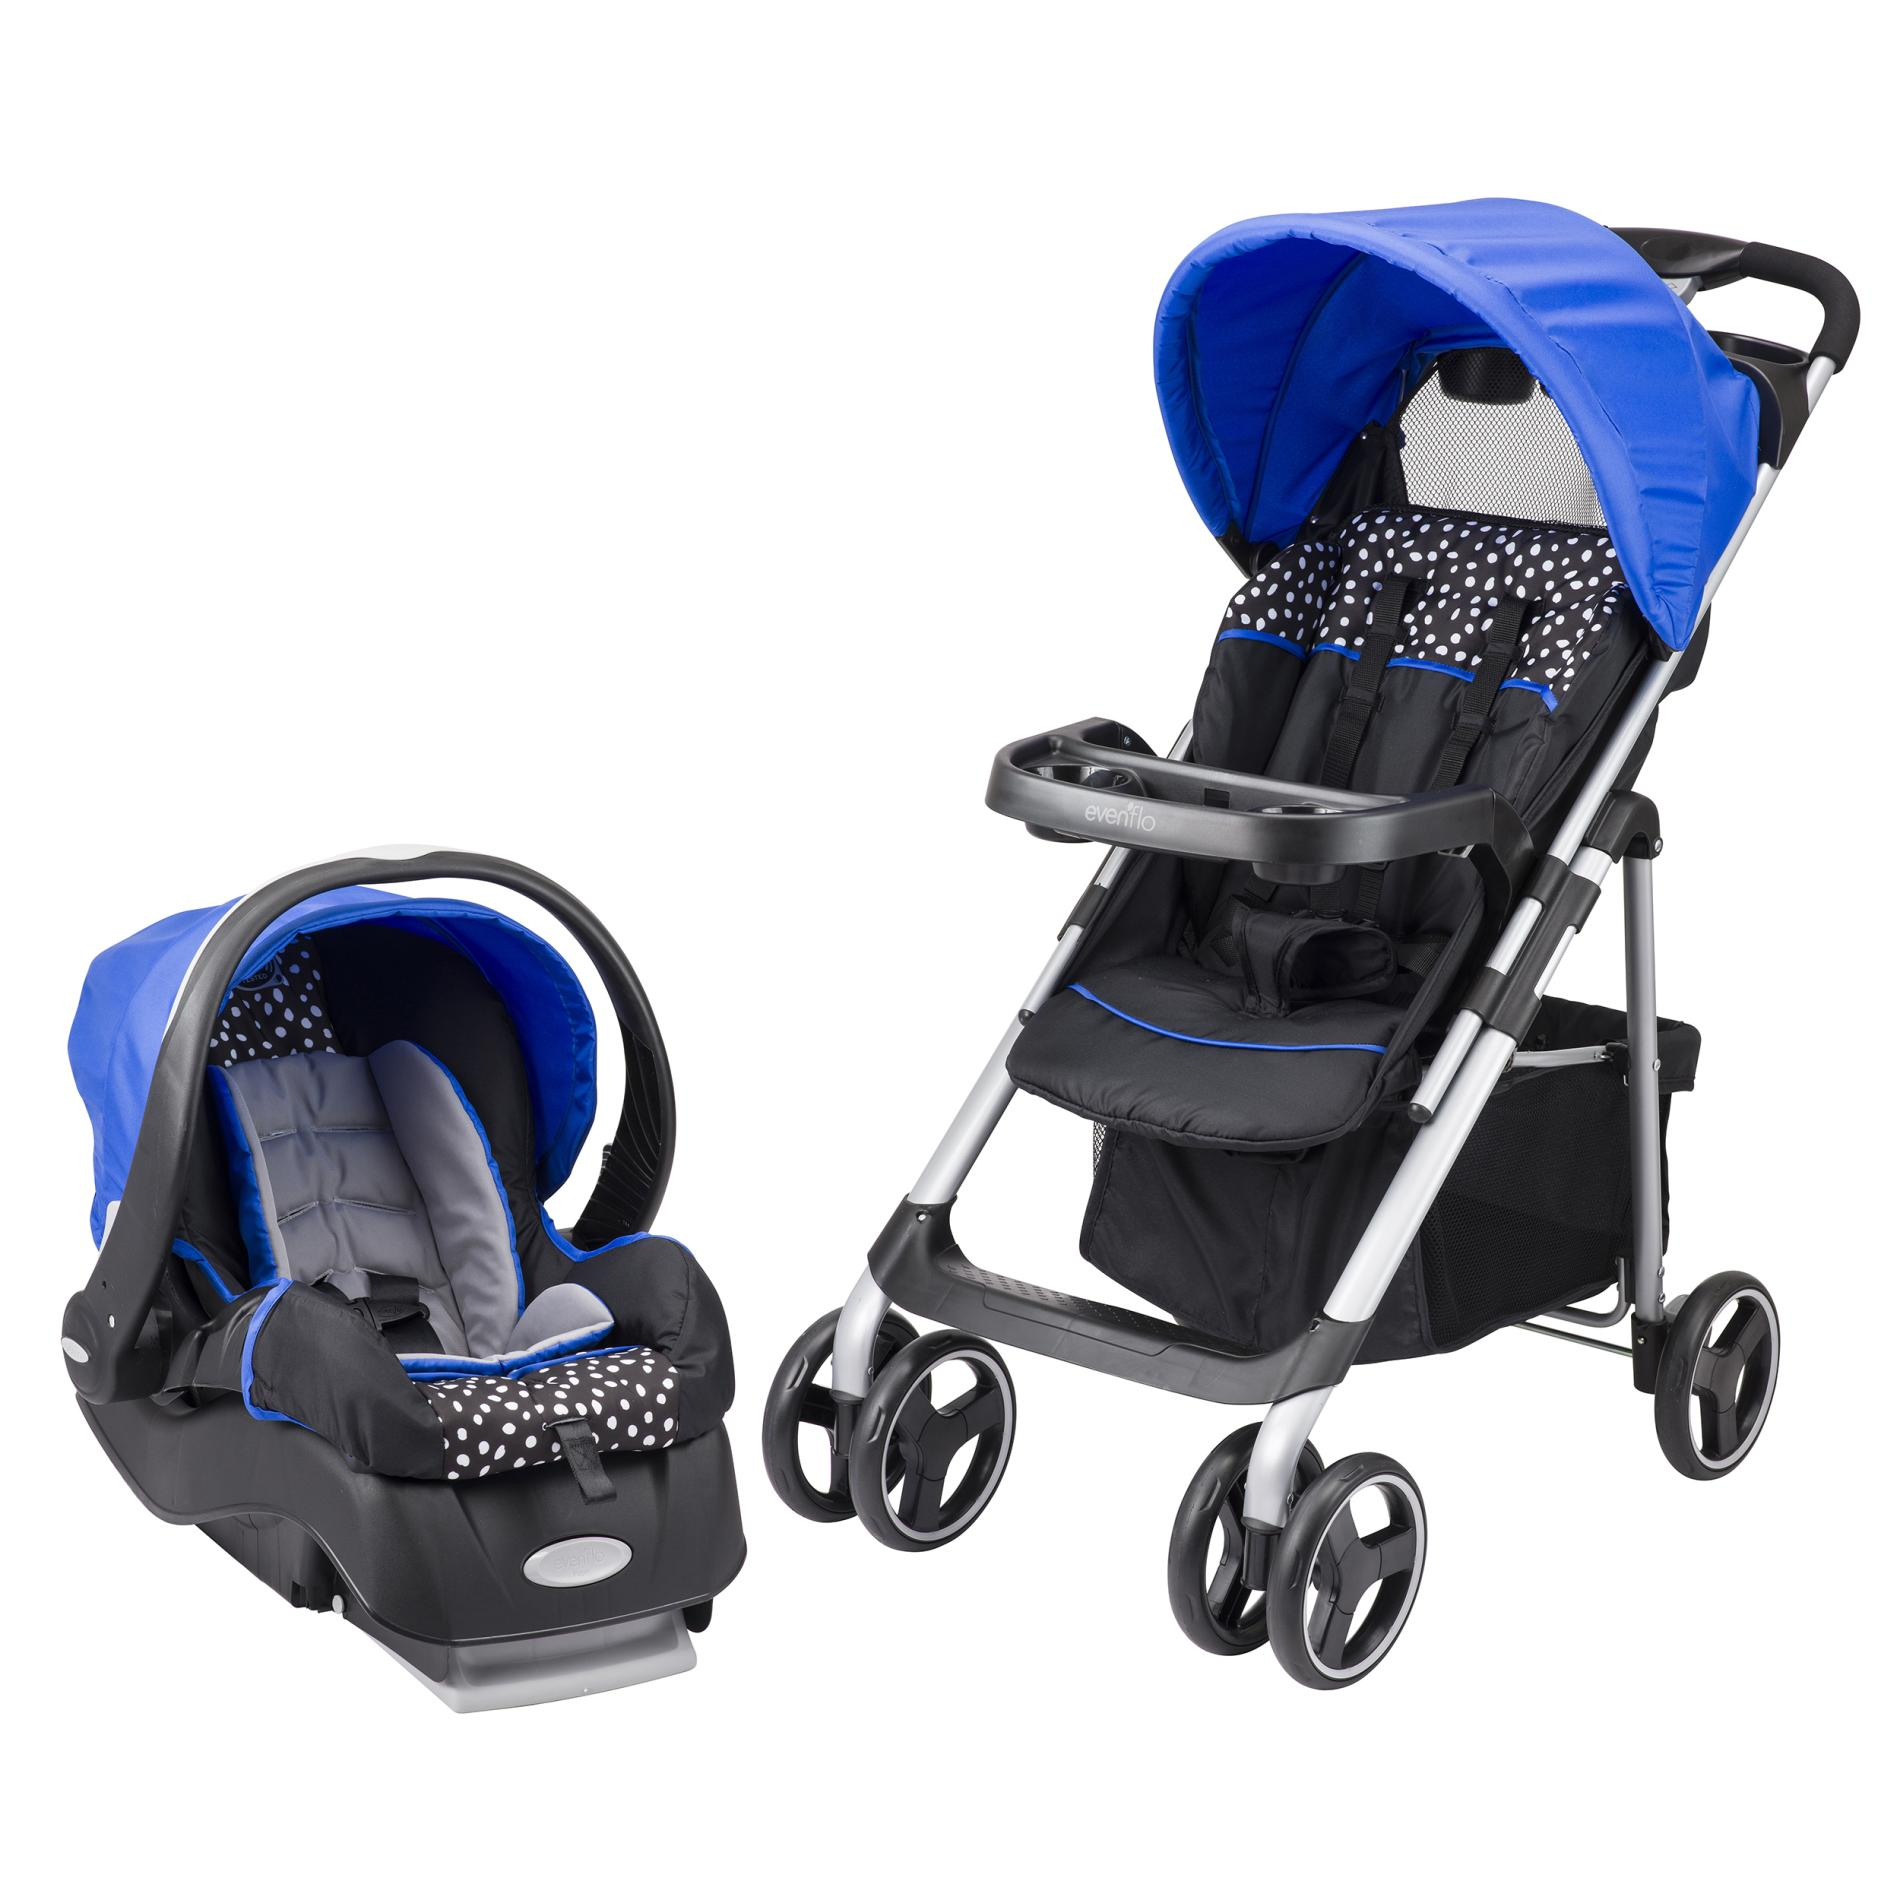 Stroller Accessories Graco Evenflo Vive Hayden Dots Infant Travel System